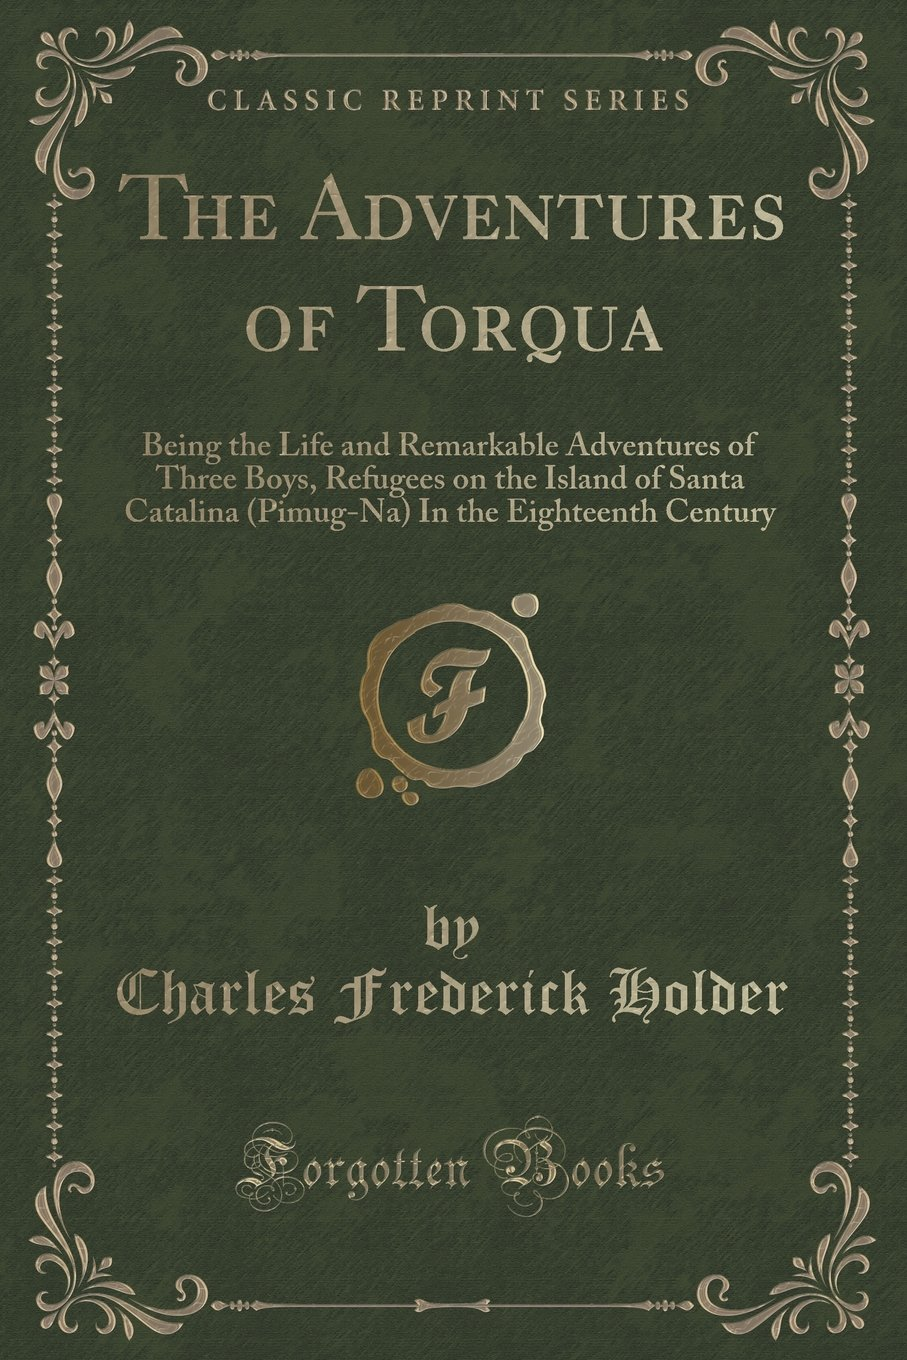 Read Online The Adventures of Torqua: Being the Life and Remarkable Adventures of Three Boys, Refugees on the Island of Santa Catalina (Pimug-Na) In the Eighteenth Century (Classic Reprint) PDF